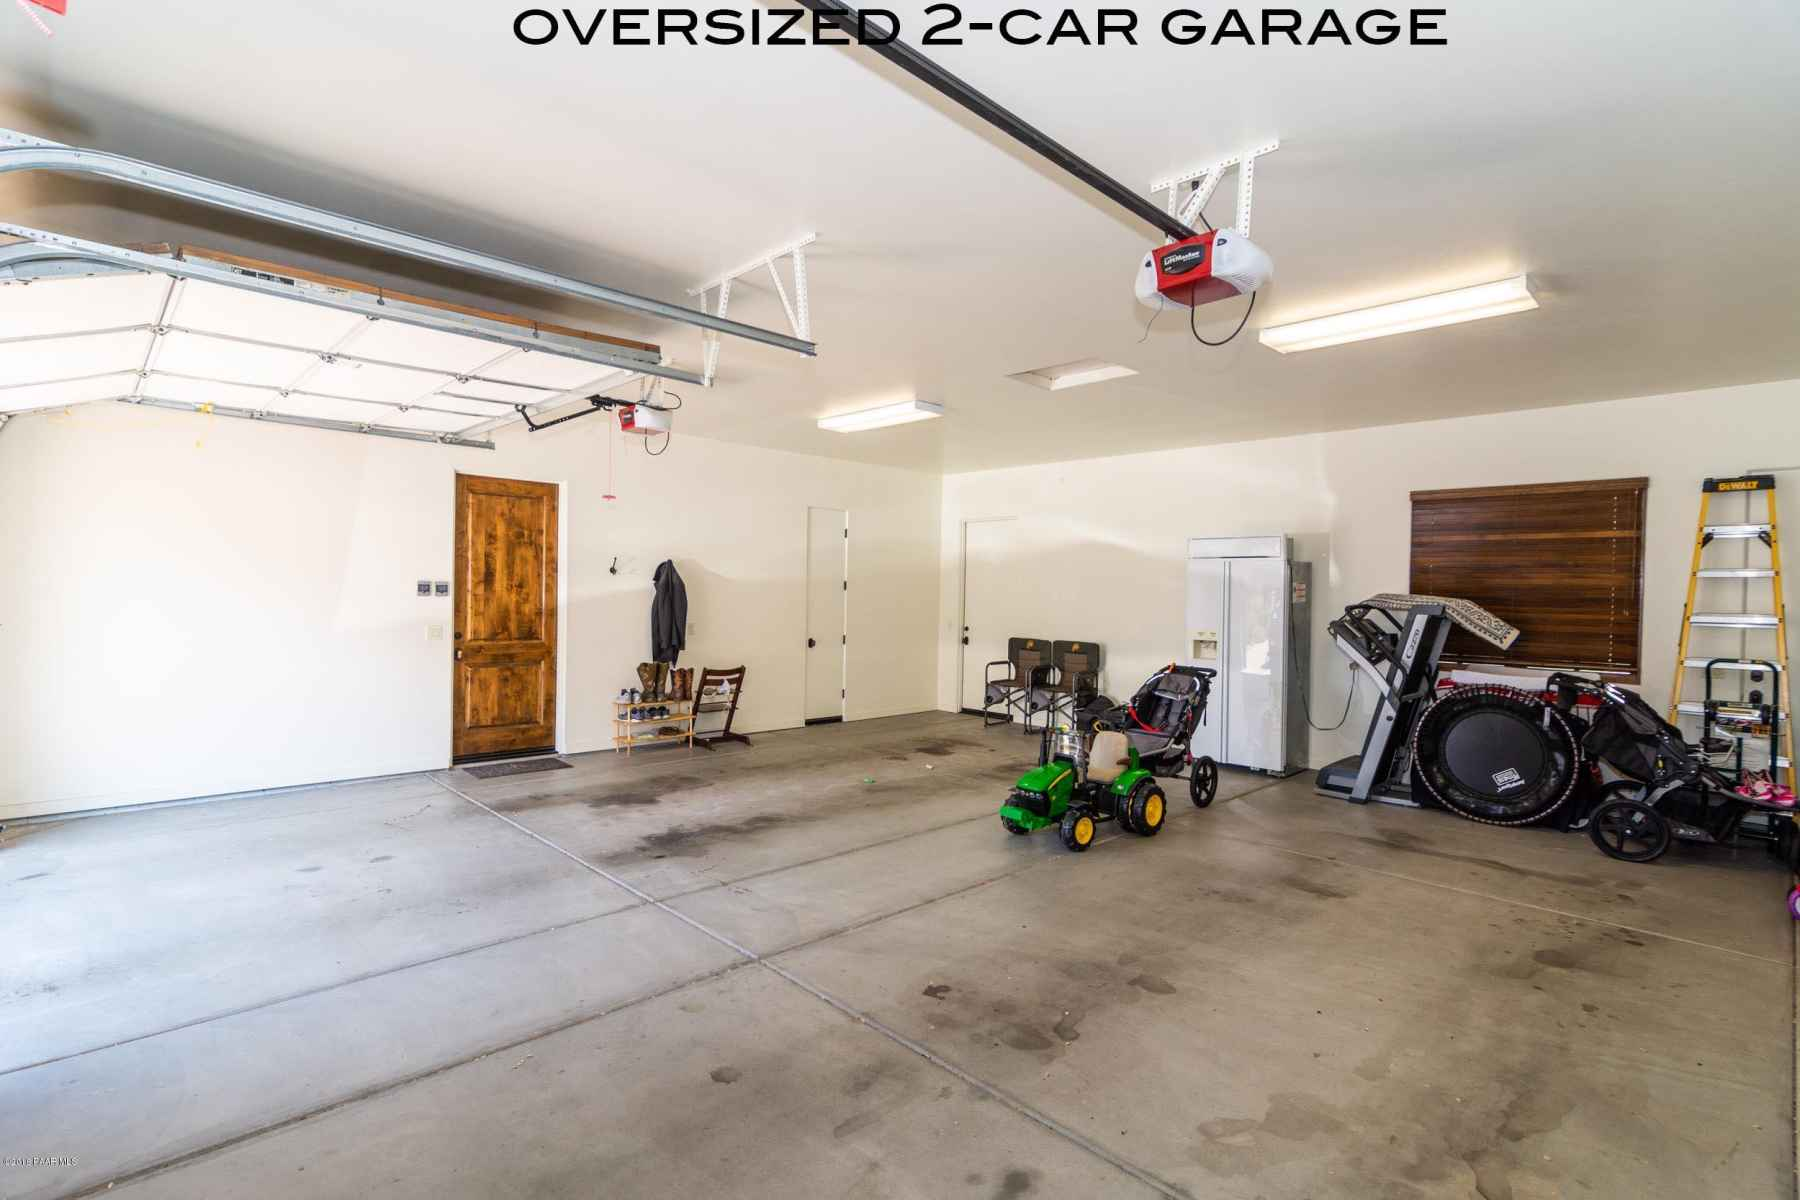 Oversized 2 Car Garage